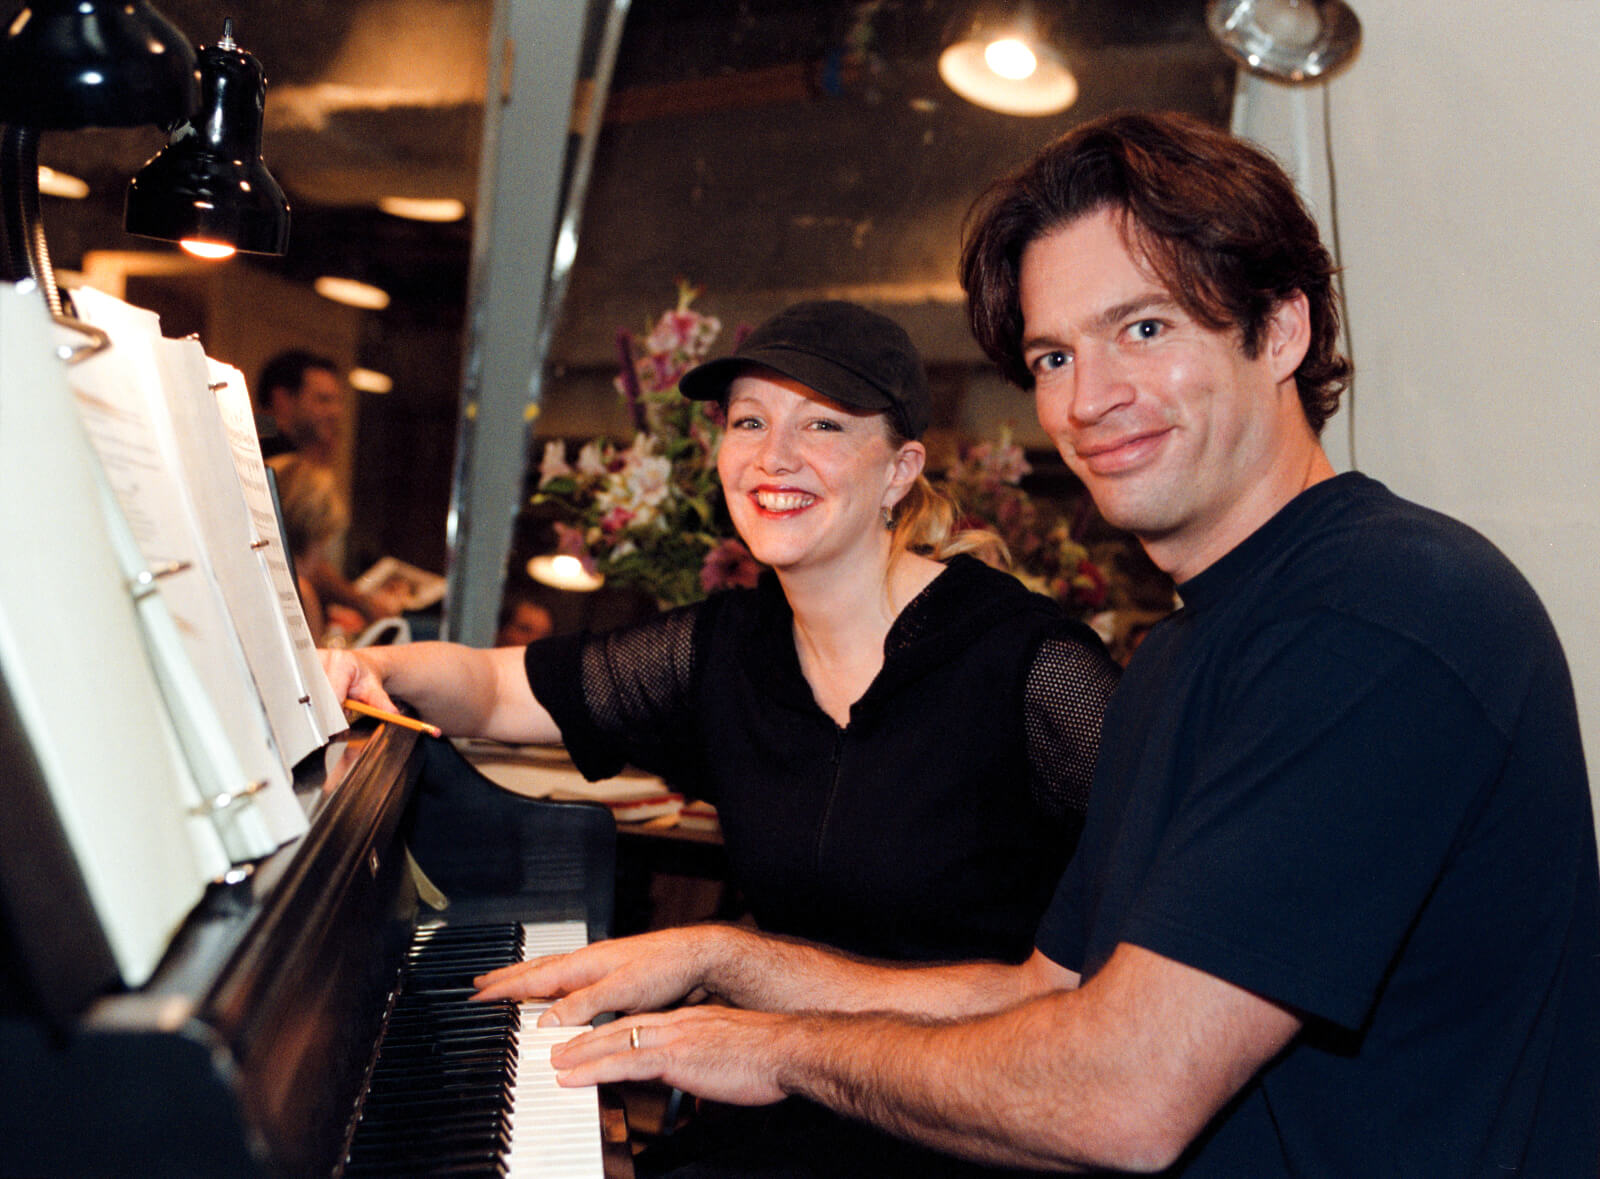 Susan Stroman and Harry Connick, Jr. sitting in a piano chair, working together.